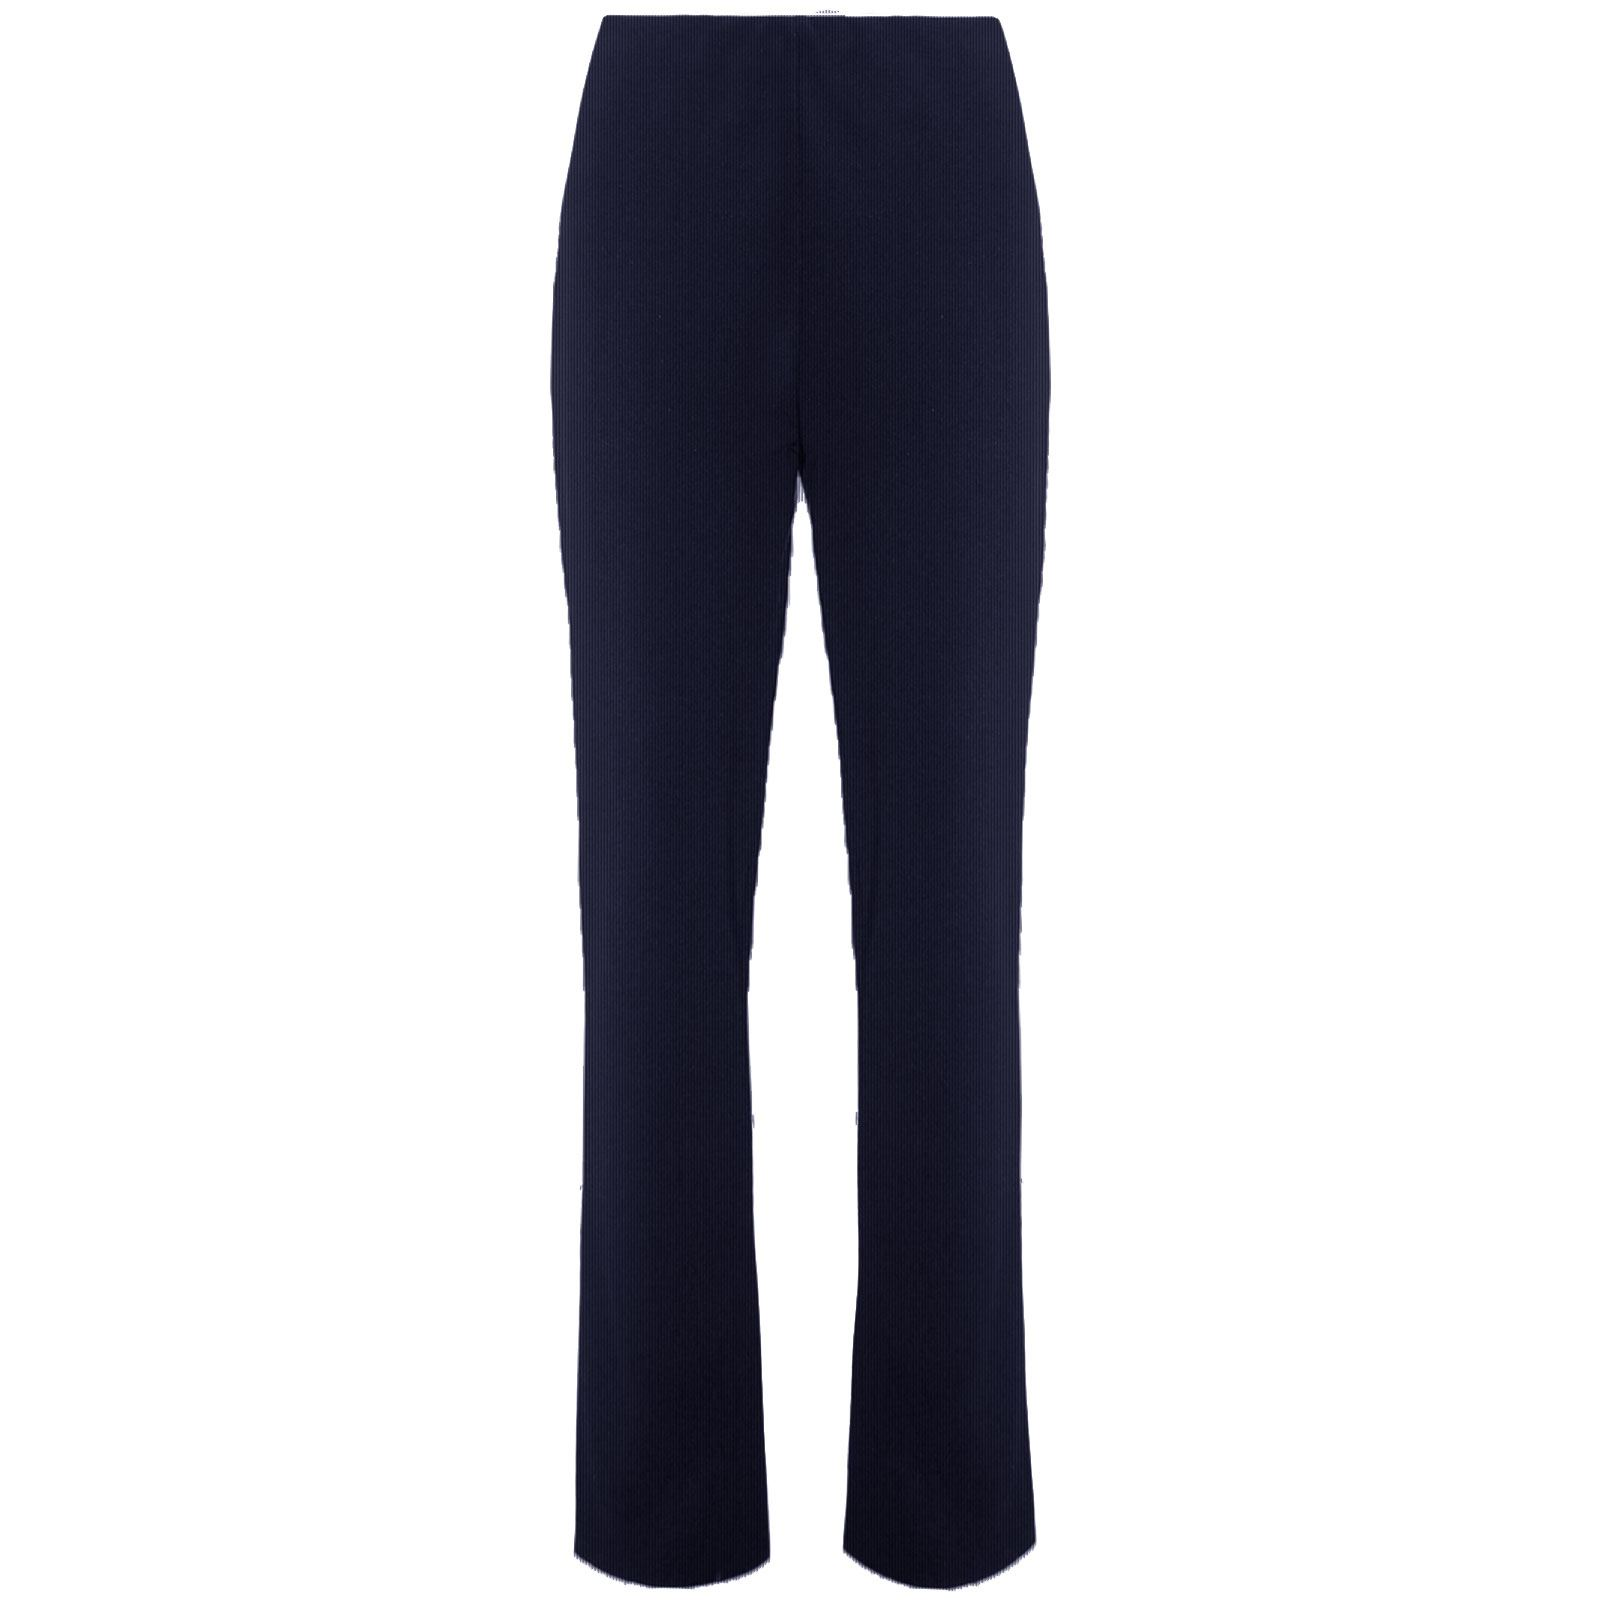 WOMENS BOOTLEG PULL ON TROUSERS LADIES SLIM FIT RIBBED PANTS BOTTOMS PLUS SIZE